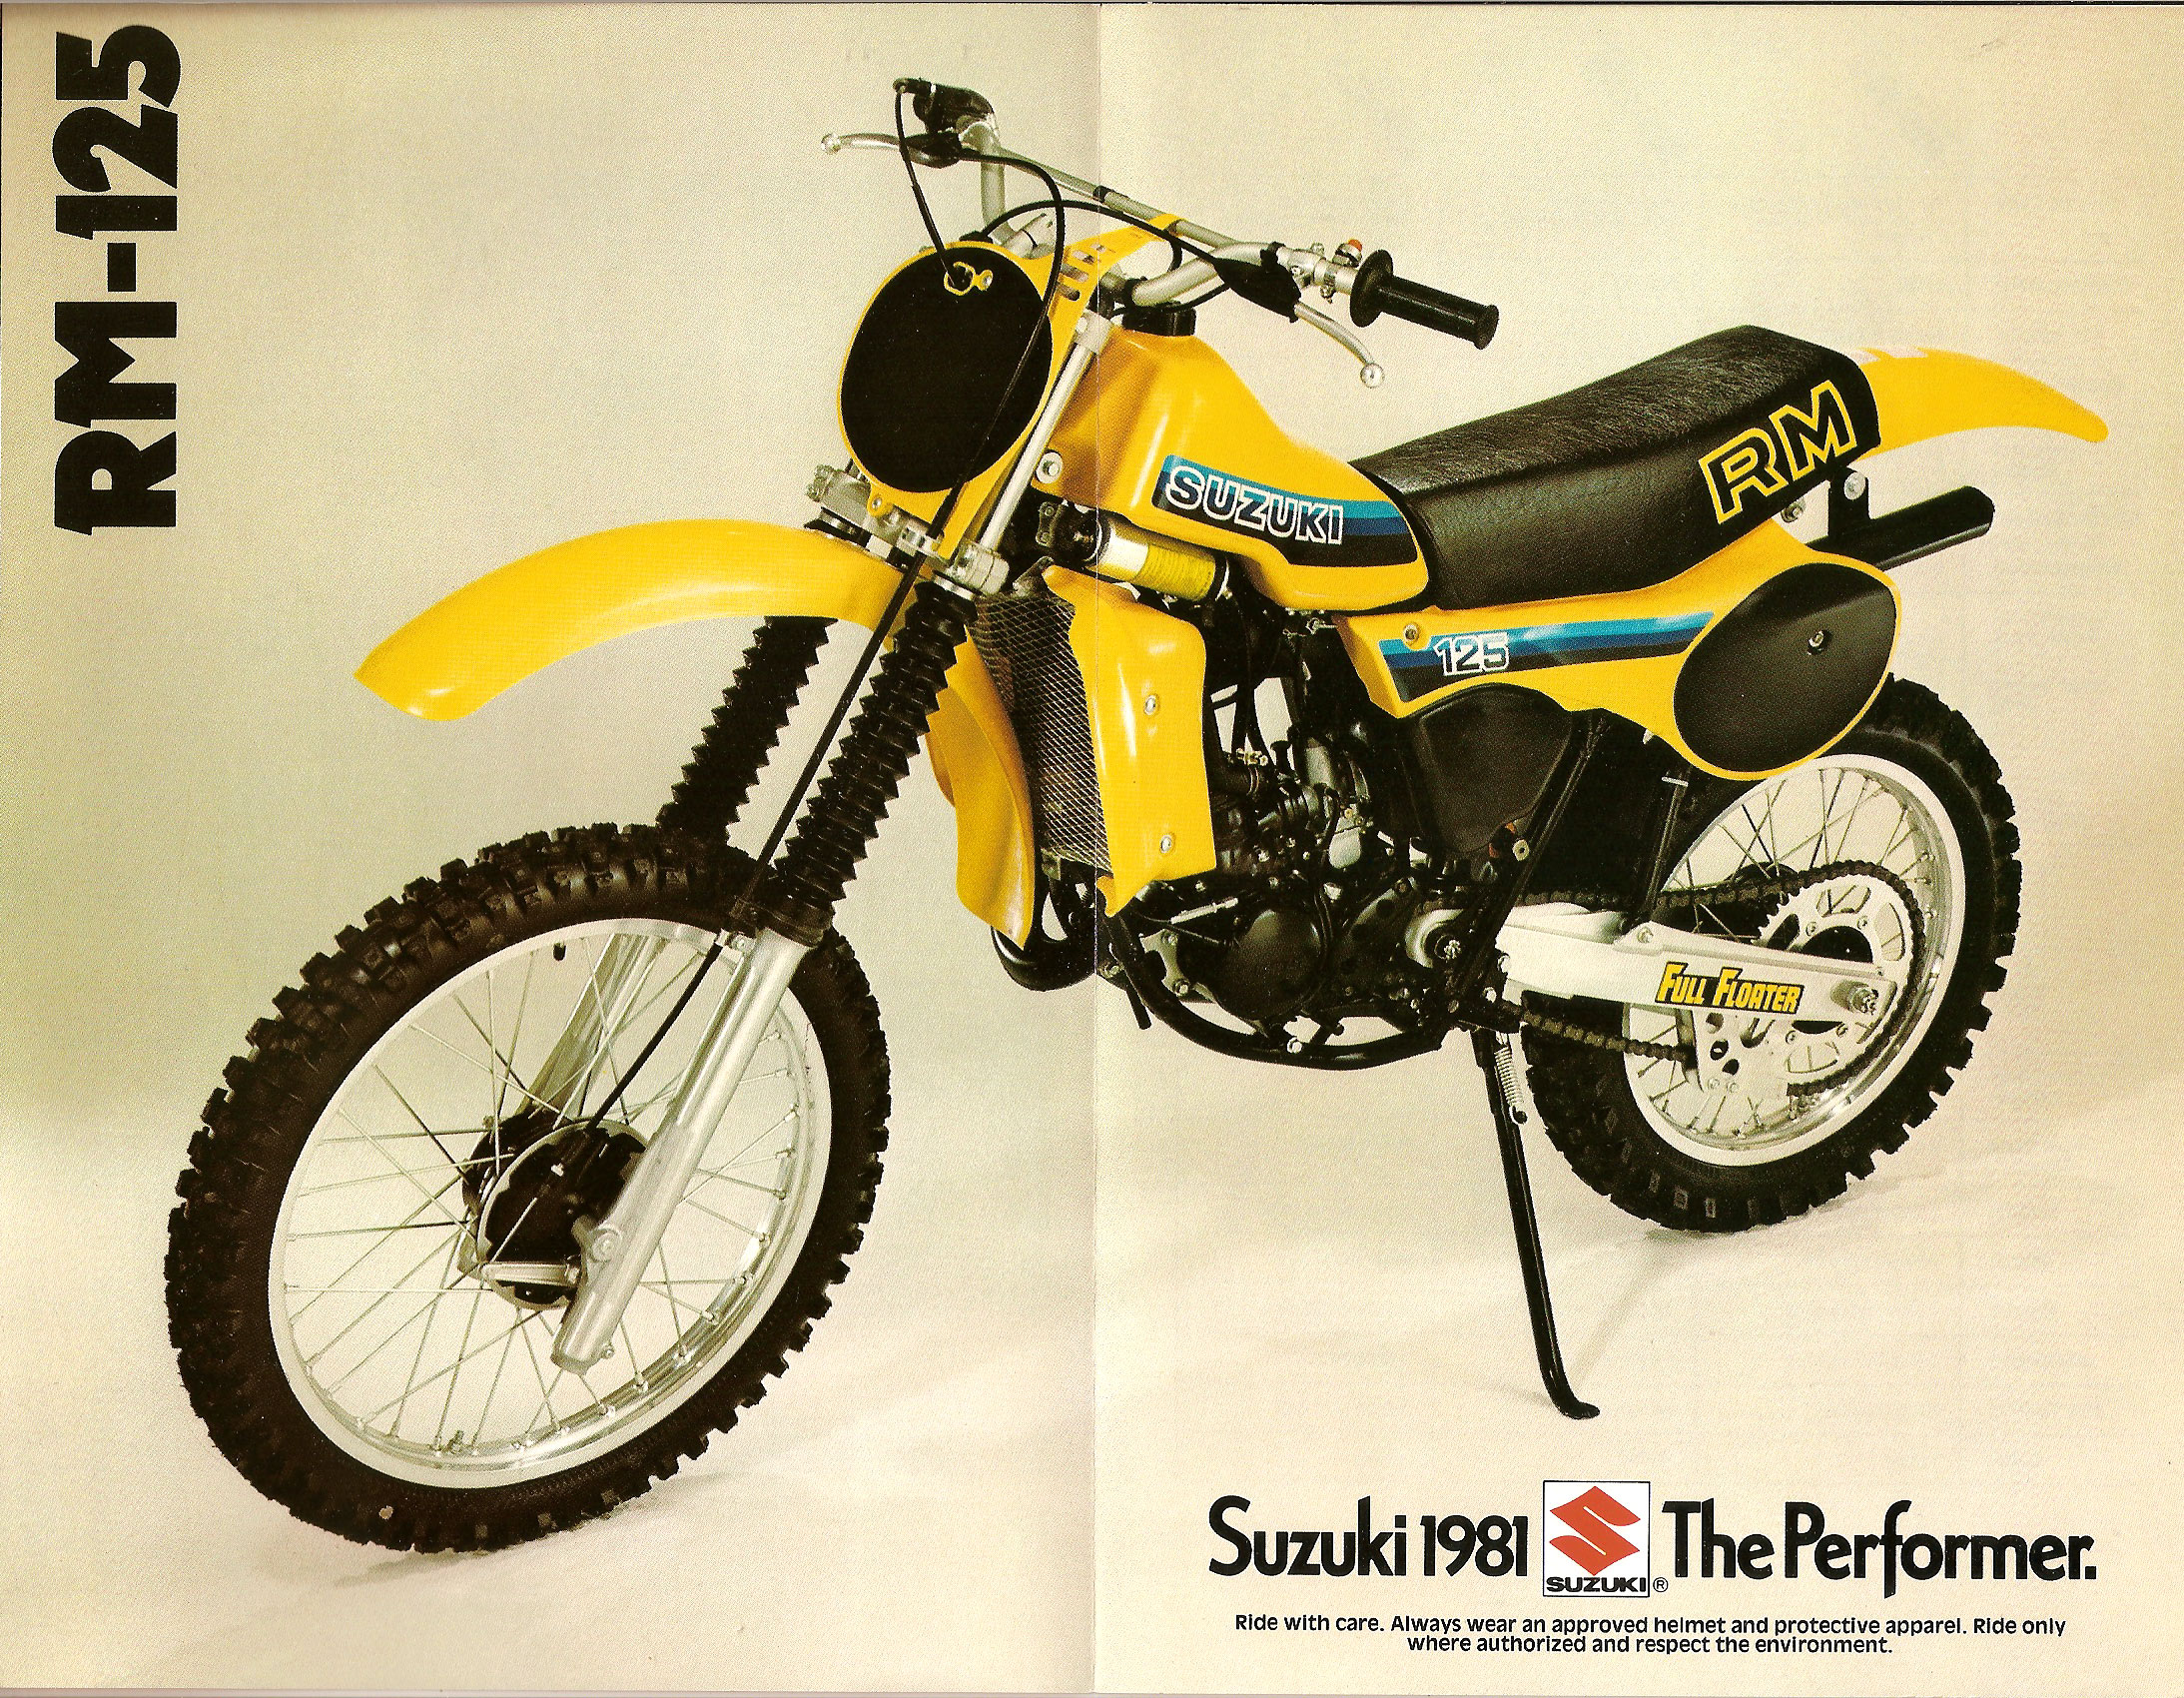 1981 suzuki rm 125 250 465 brochure full floater suzuki rm vintage motocross. Black Bedroom Furniture Sets. Home Design Ideas